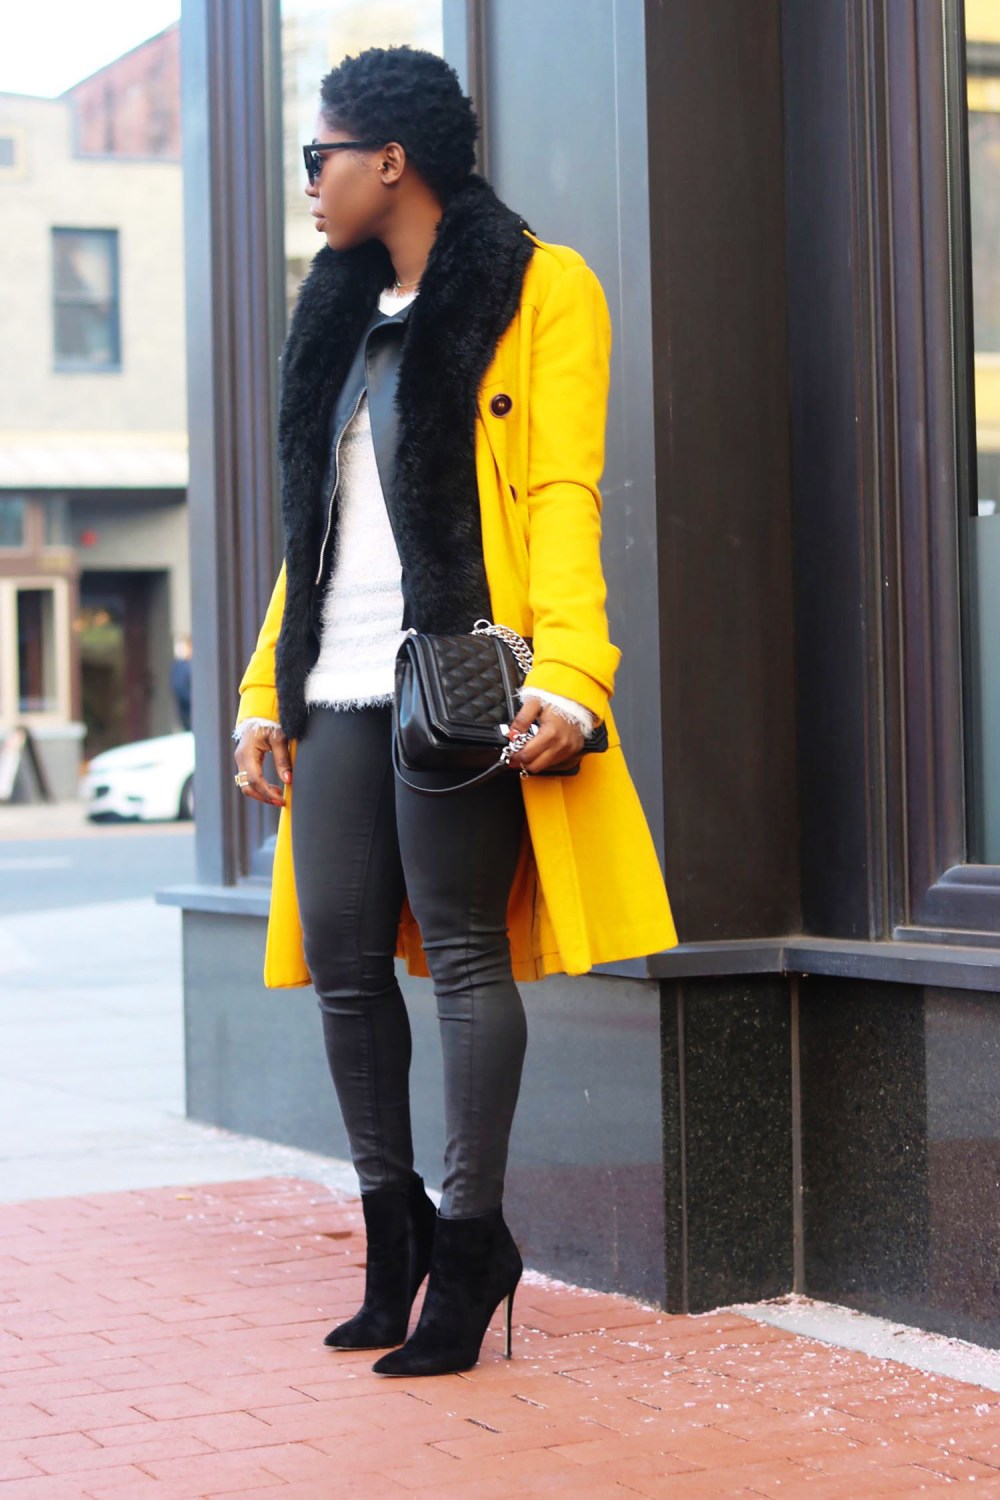 style-synopsis-leather-jeans-ankle-boots-street-style